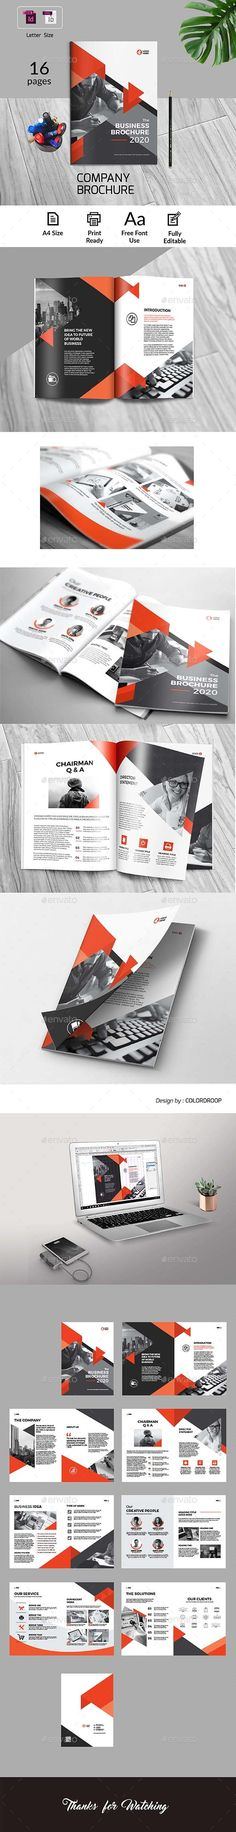 Company Brochure — InDesign INDD #elegant #catalog • Download ➝ https://graphicriver.net/item/company-brochure/21194987?ref=pxcr